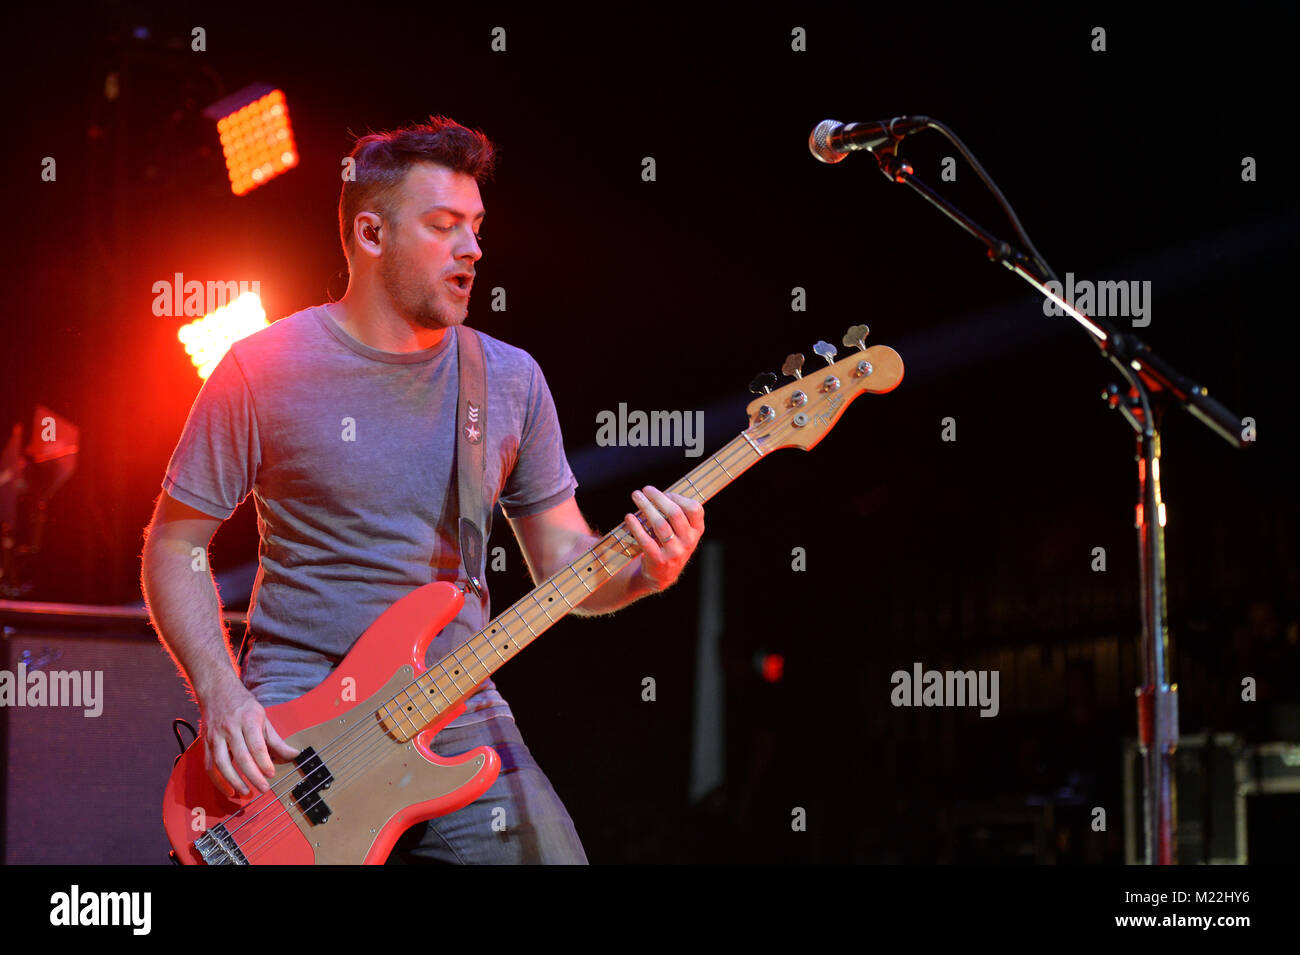 MIAMI BEACH, FL - APRIL 22: Gavin Rossdale of Bush performs at The Fillmore Miami Beach on April 22, 2016 in Miami - Stock Image